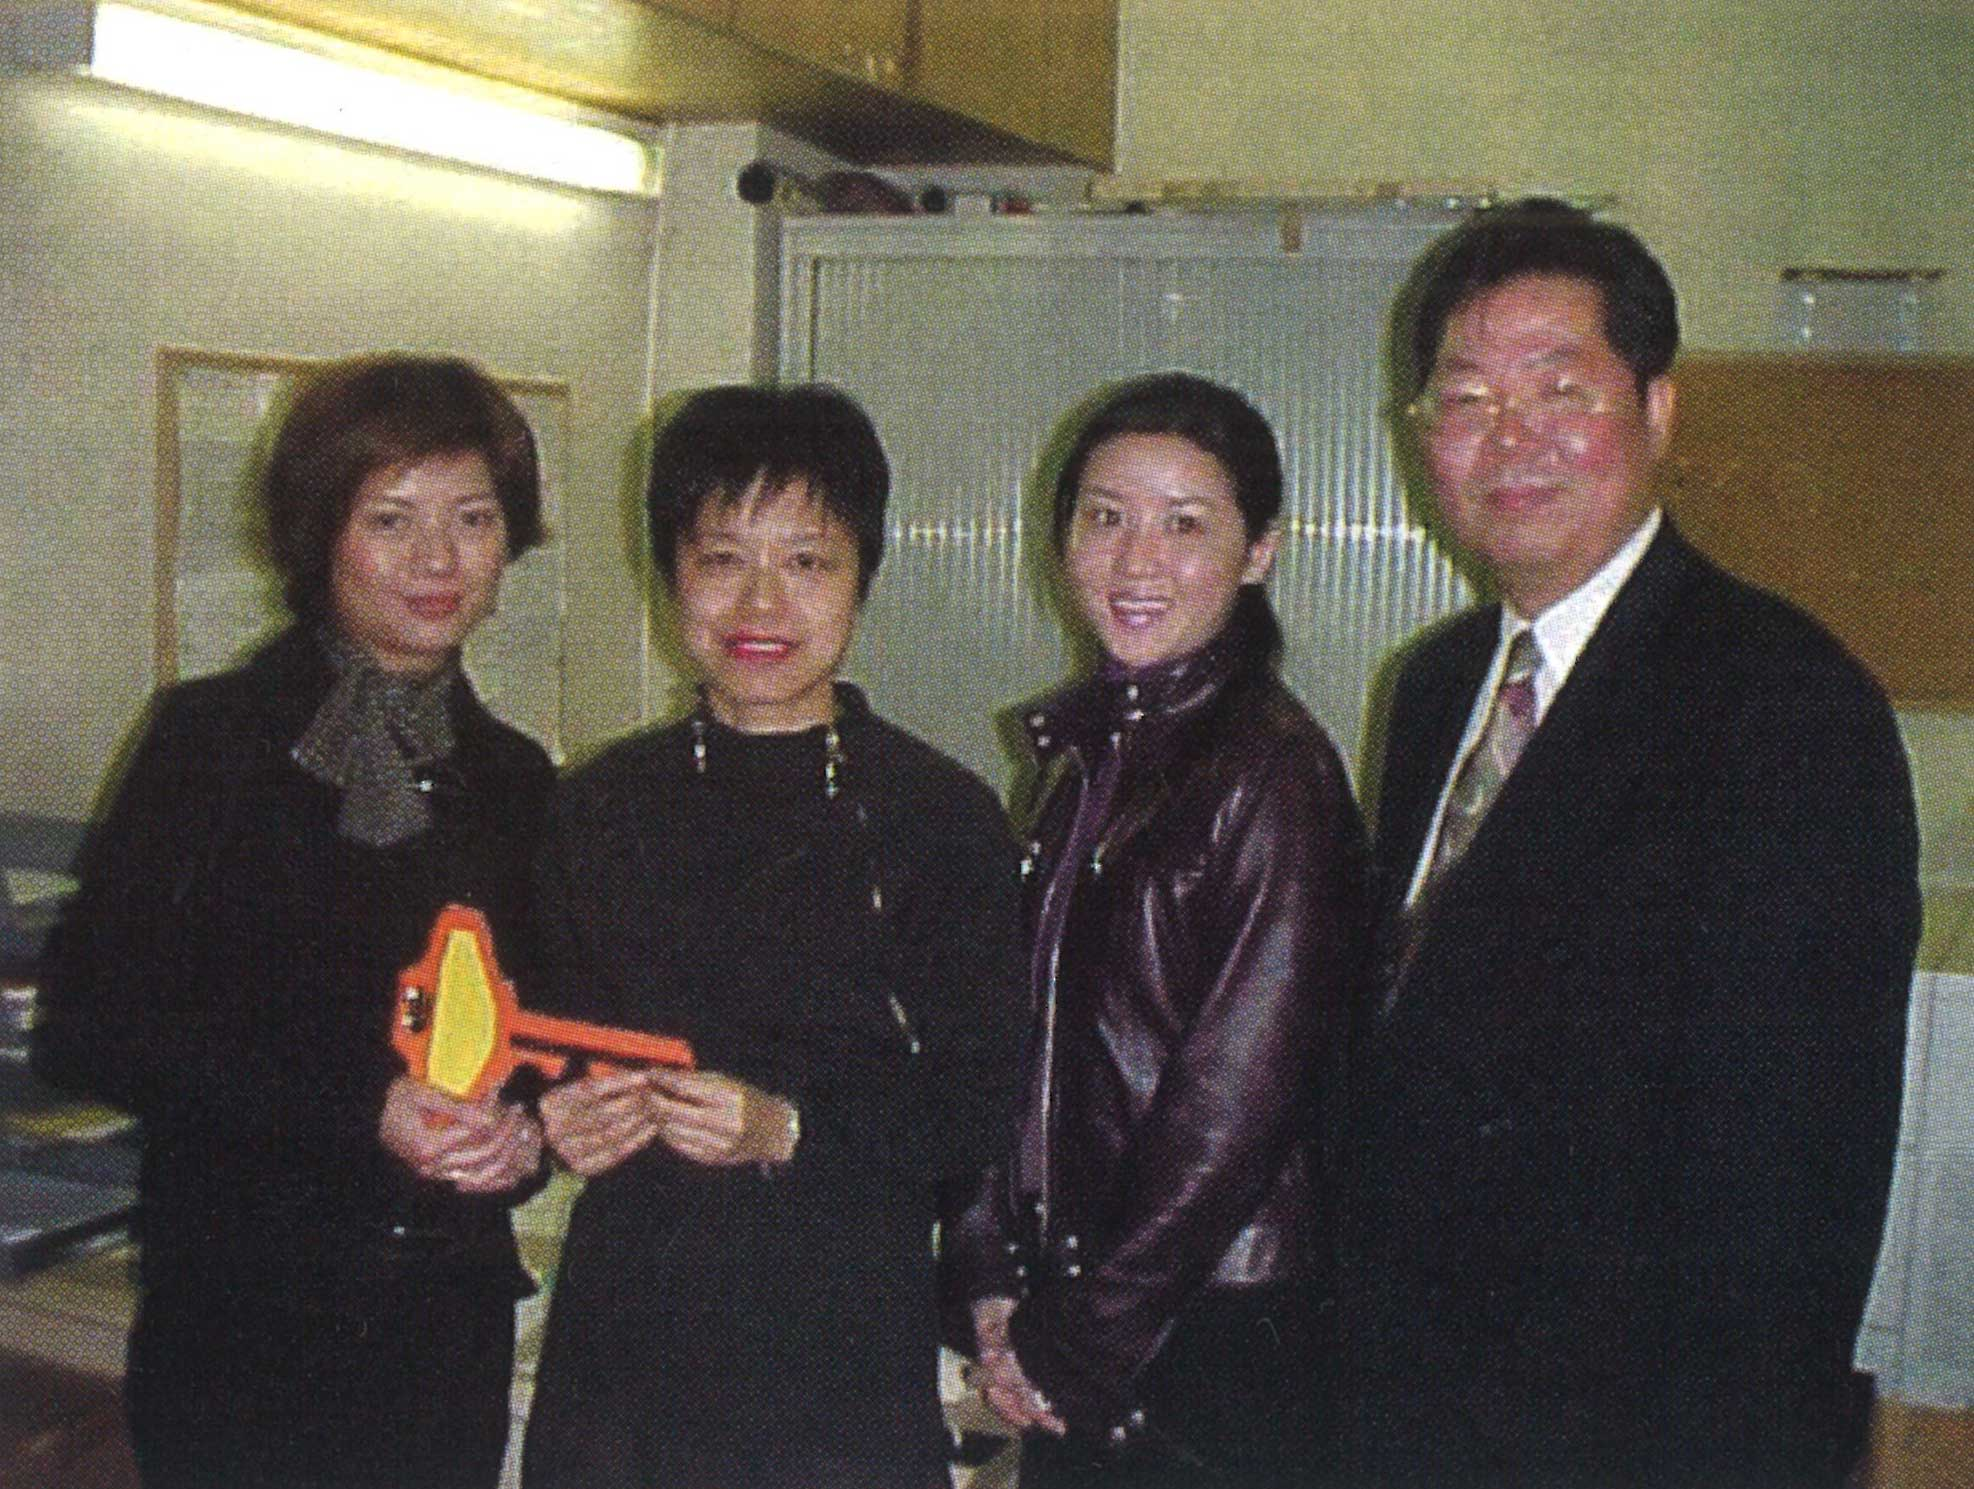 2001: Gilbert oversaw the ceremony when there was a change of Club office managers. Carol Yiu (left), the new manager, took over from Racquel Cheung. Membership secretary Canny Wong (second from right) left at the same time.